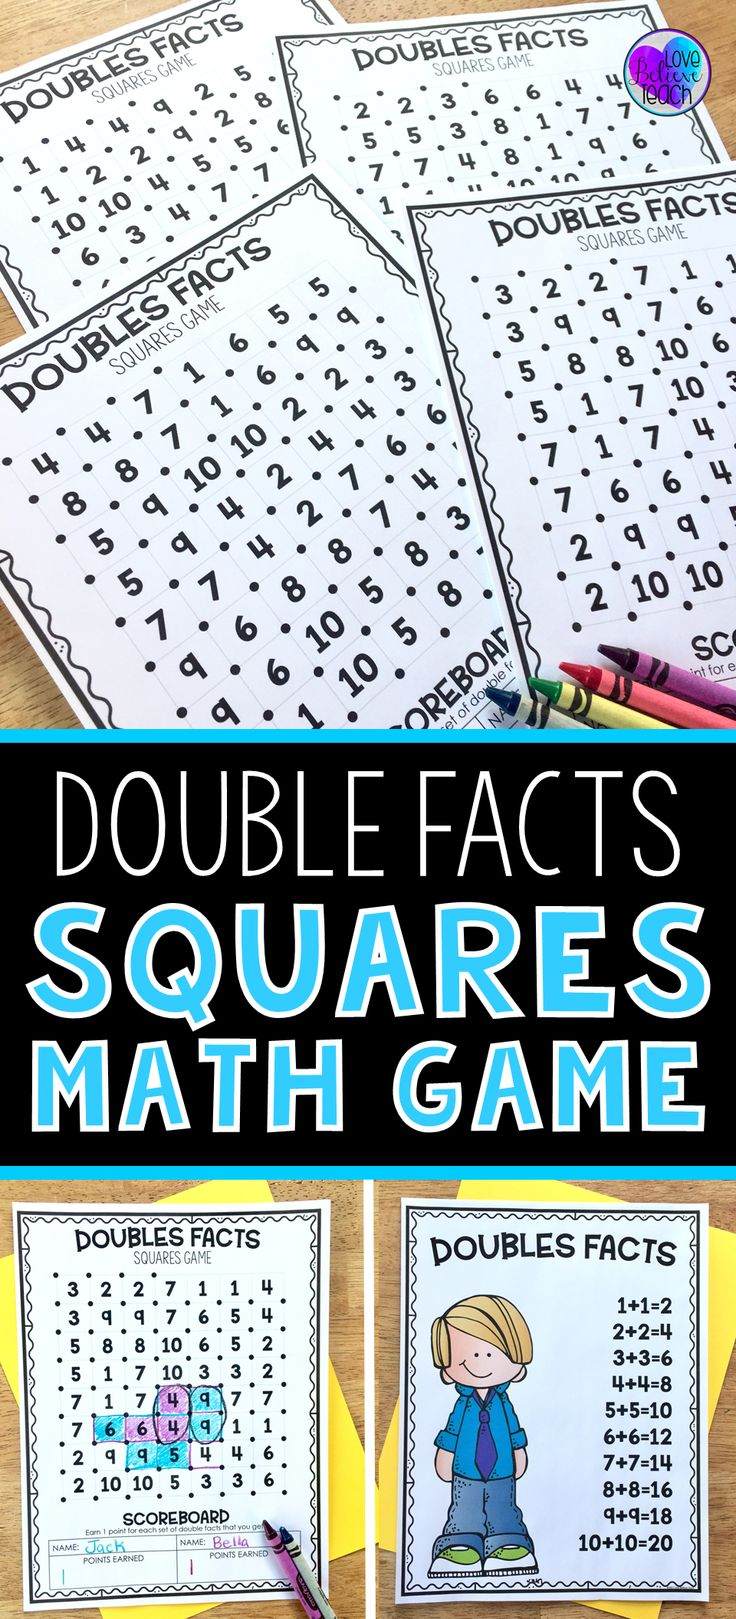 Help improve your first grade and second grade students' fact fluency by practicing double facts with this fun game. Just add it into your math rotations, math centers, Friday Fun Day, or have it available for your fast finishers. Double Facts Squares Math Game- is a simple activity to learn yet fun to play again and again. #mathpracticegames